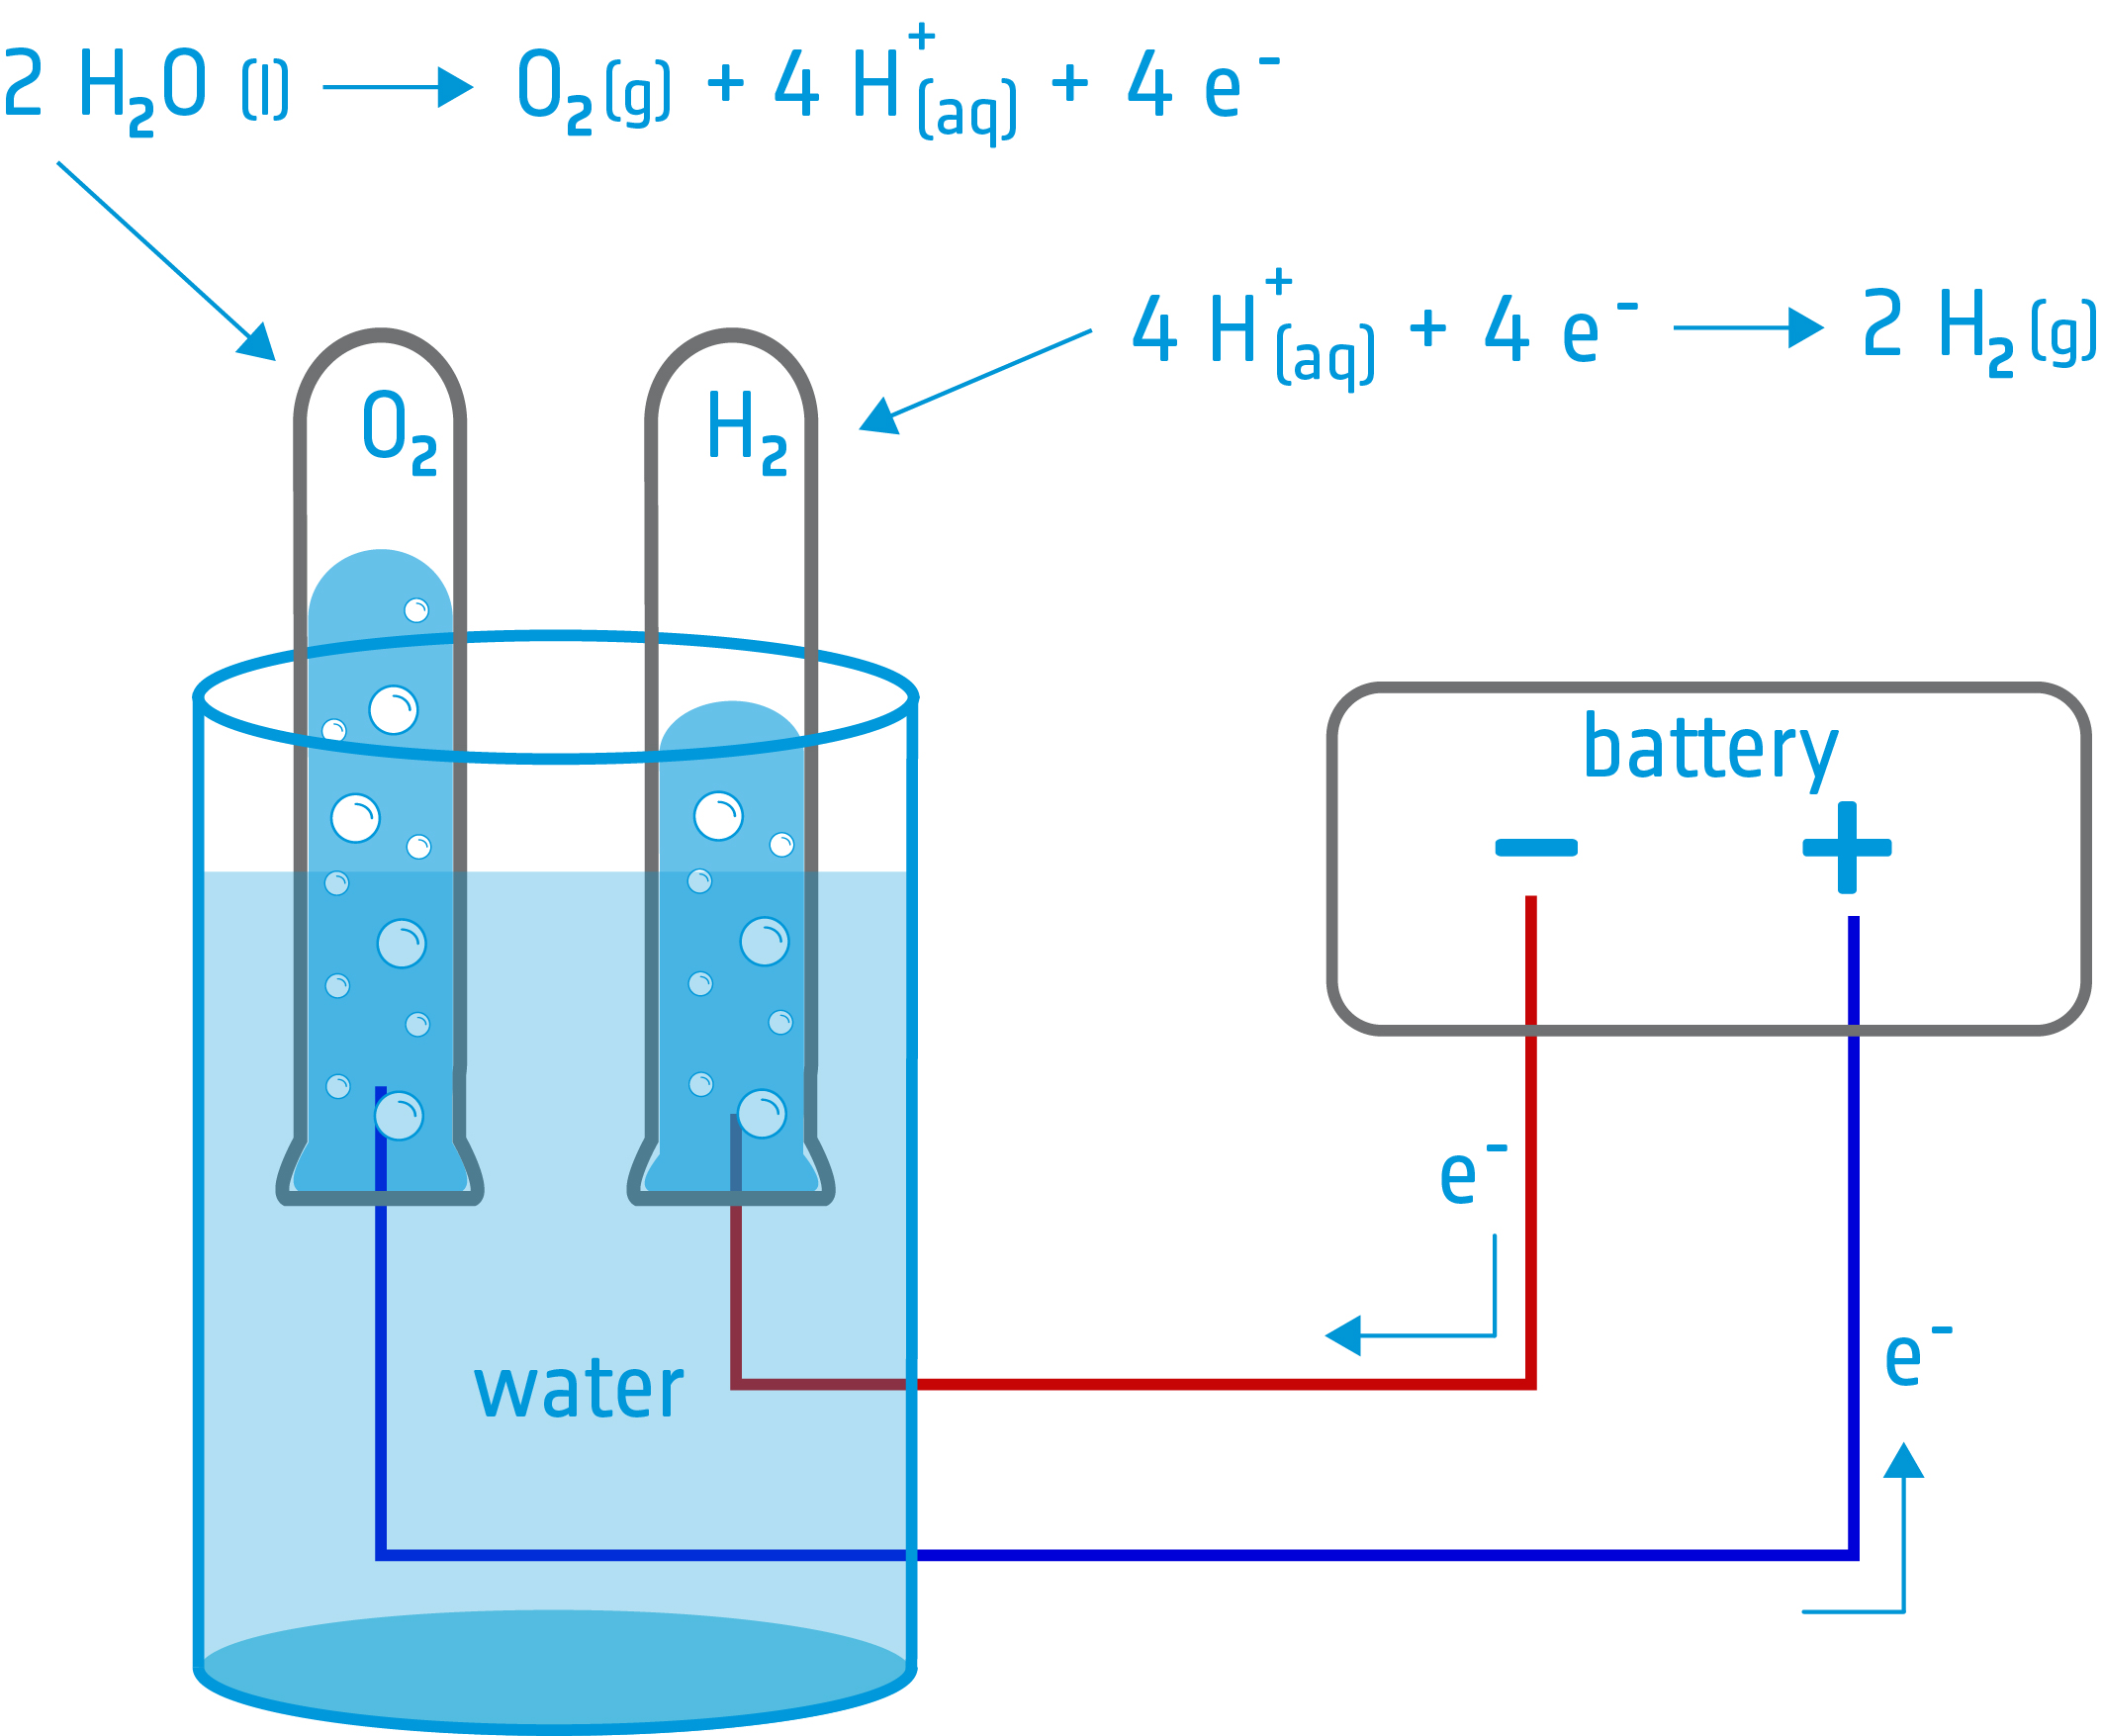 C09 Power from water – How to produce oxygen and hydrogen on the Moon